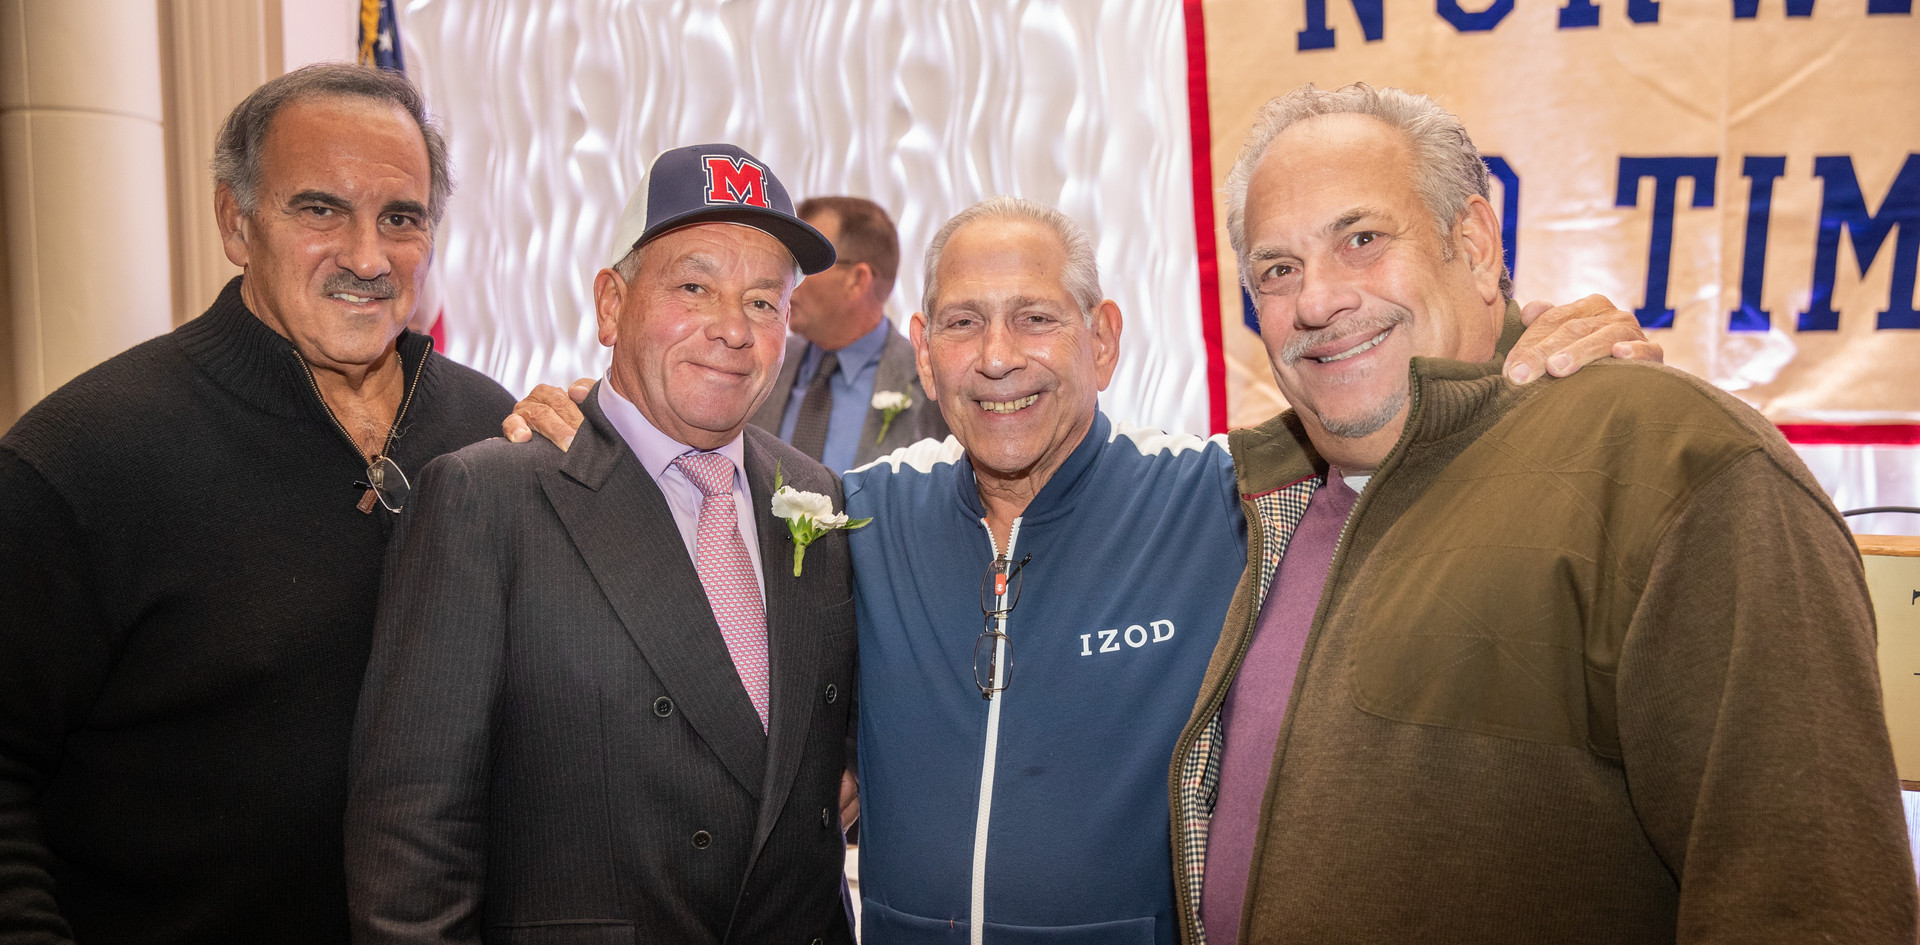 2014 honoree Rudy Gisolfi, 2019 honoree Felix Rodriquez, Richie Galbo, and Mike DiDio.  (photo by Josh Molaver)